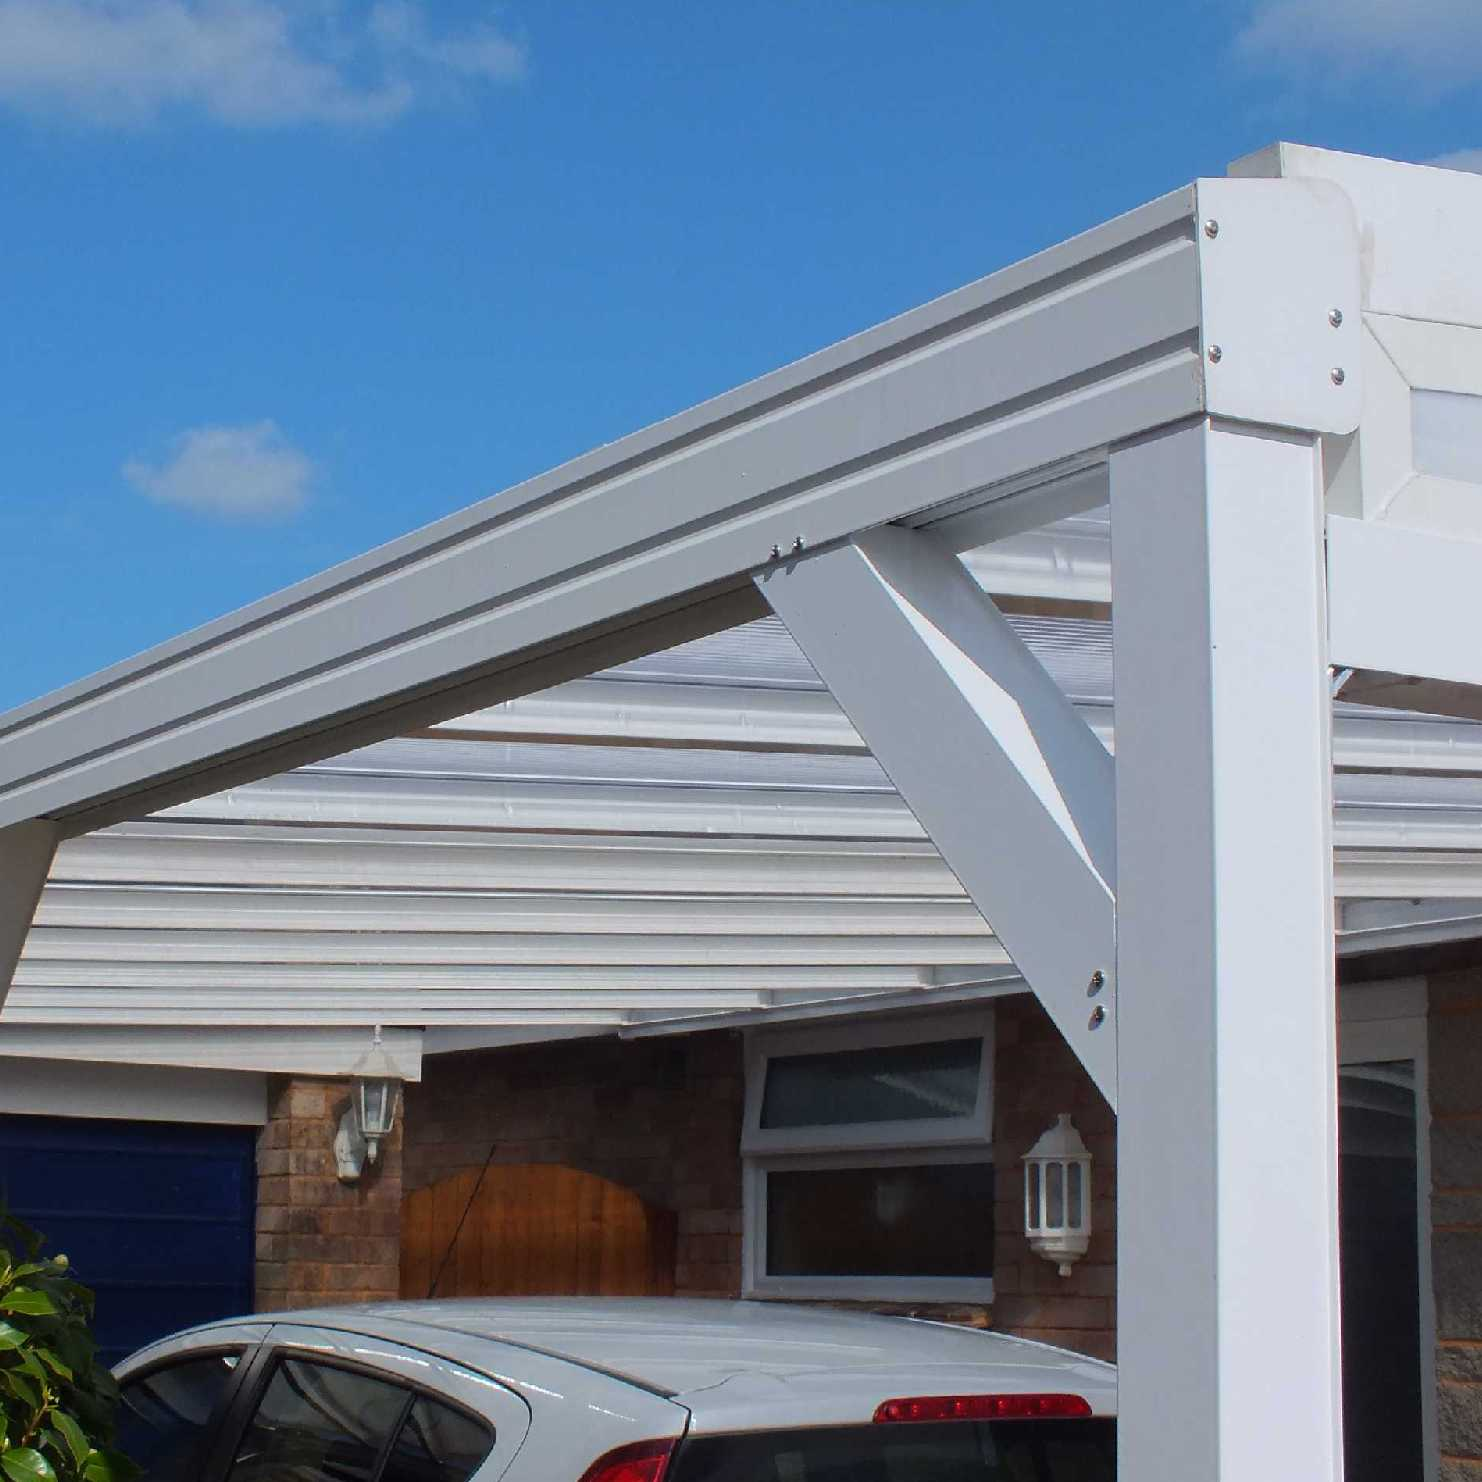 Great deals on Omega Smart White Lean-To Canopy with 16mm Polycarbonate Glazing - 9.1m (W) x 4.5m (P), (5) Supporting Posts